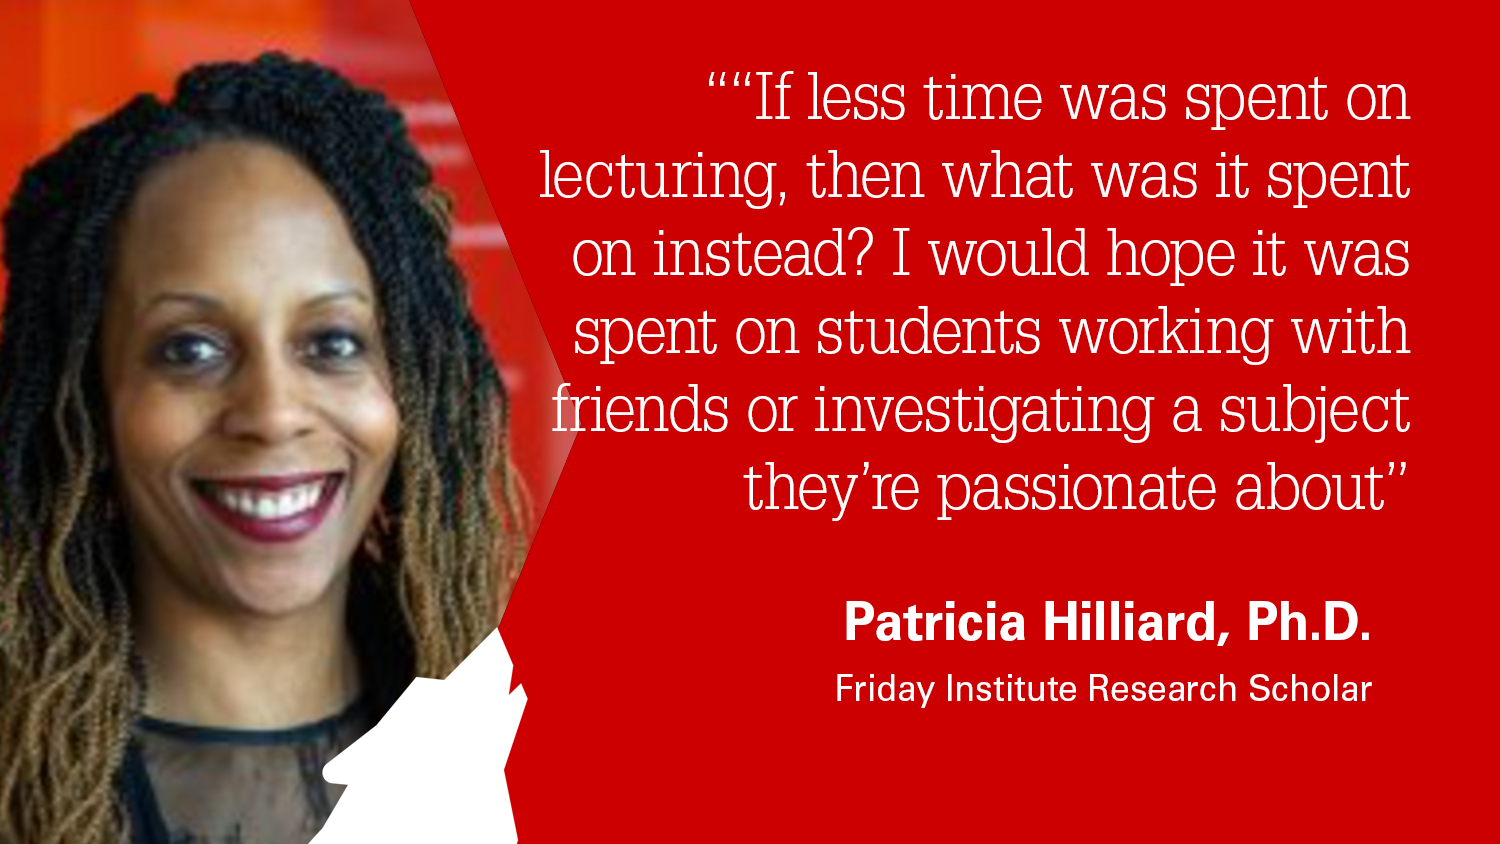 Friday Institute for Educational Innovation Research Scholar Patricia Hilliard, Ph.D.